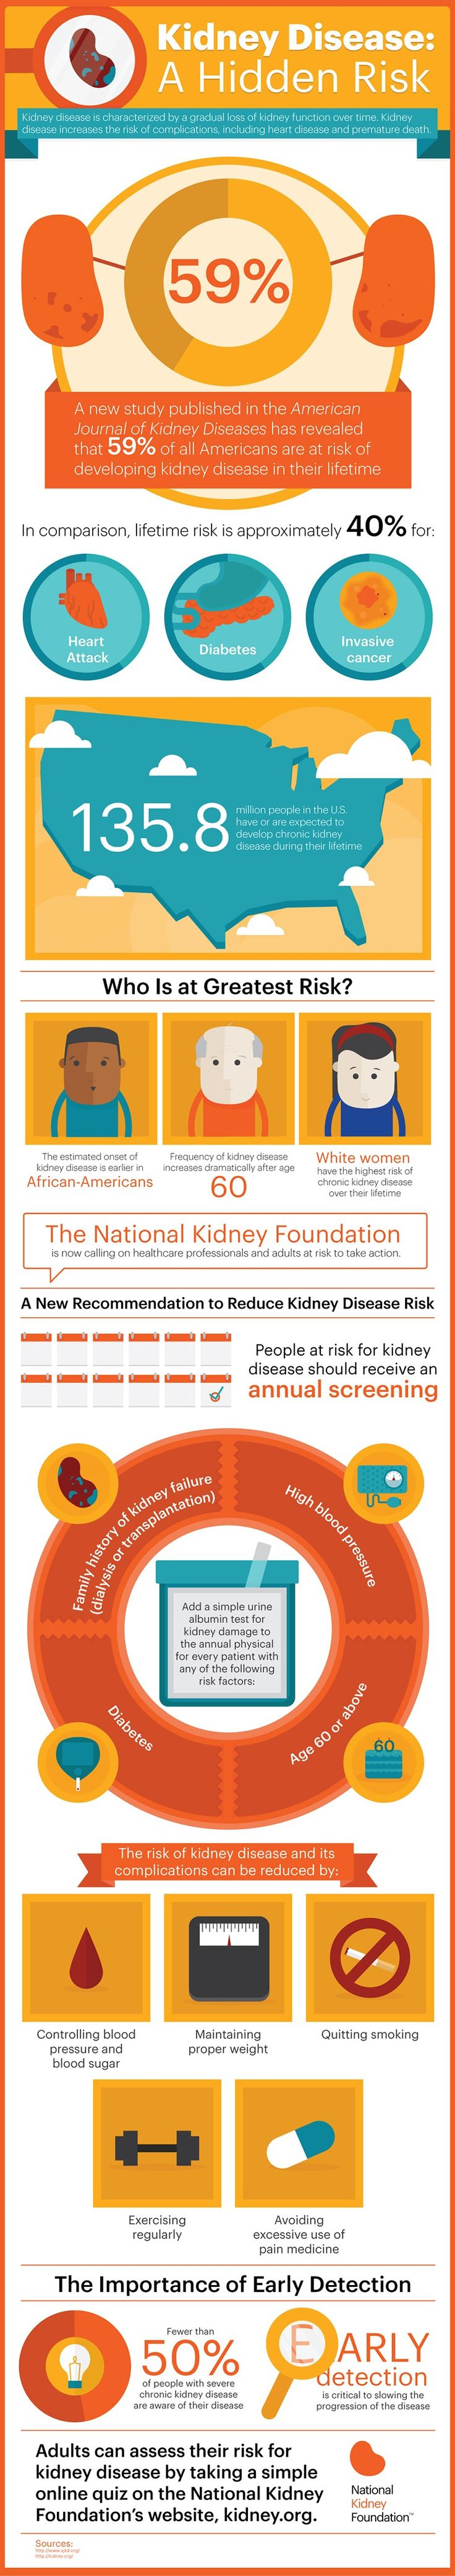 The National Kidney Foundation: News